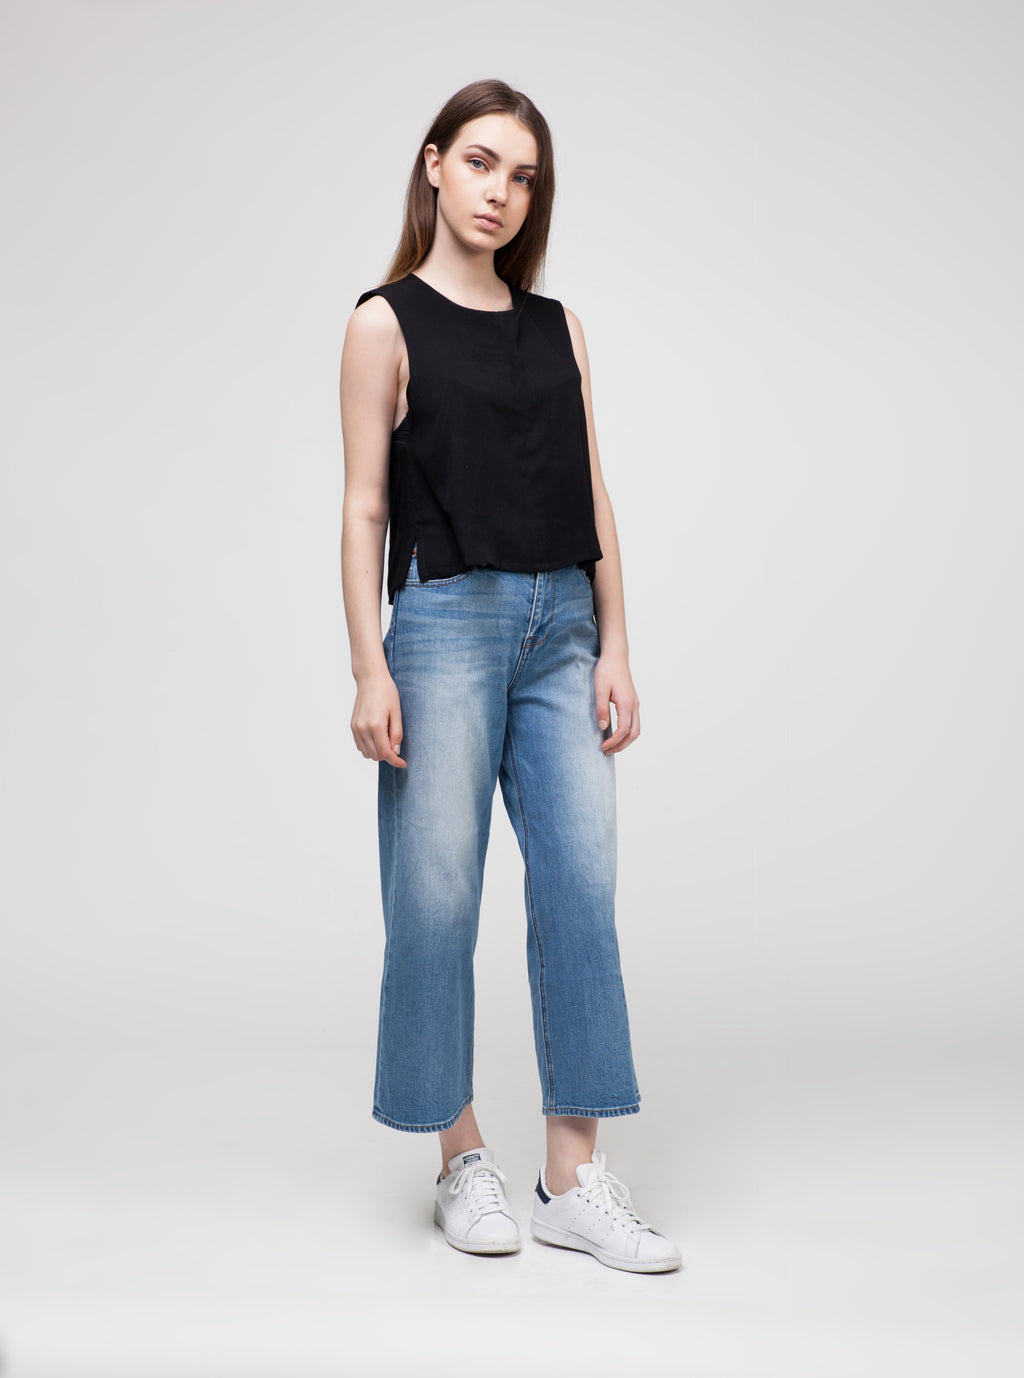 A-Line Sleeveless Top